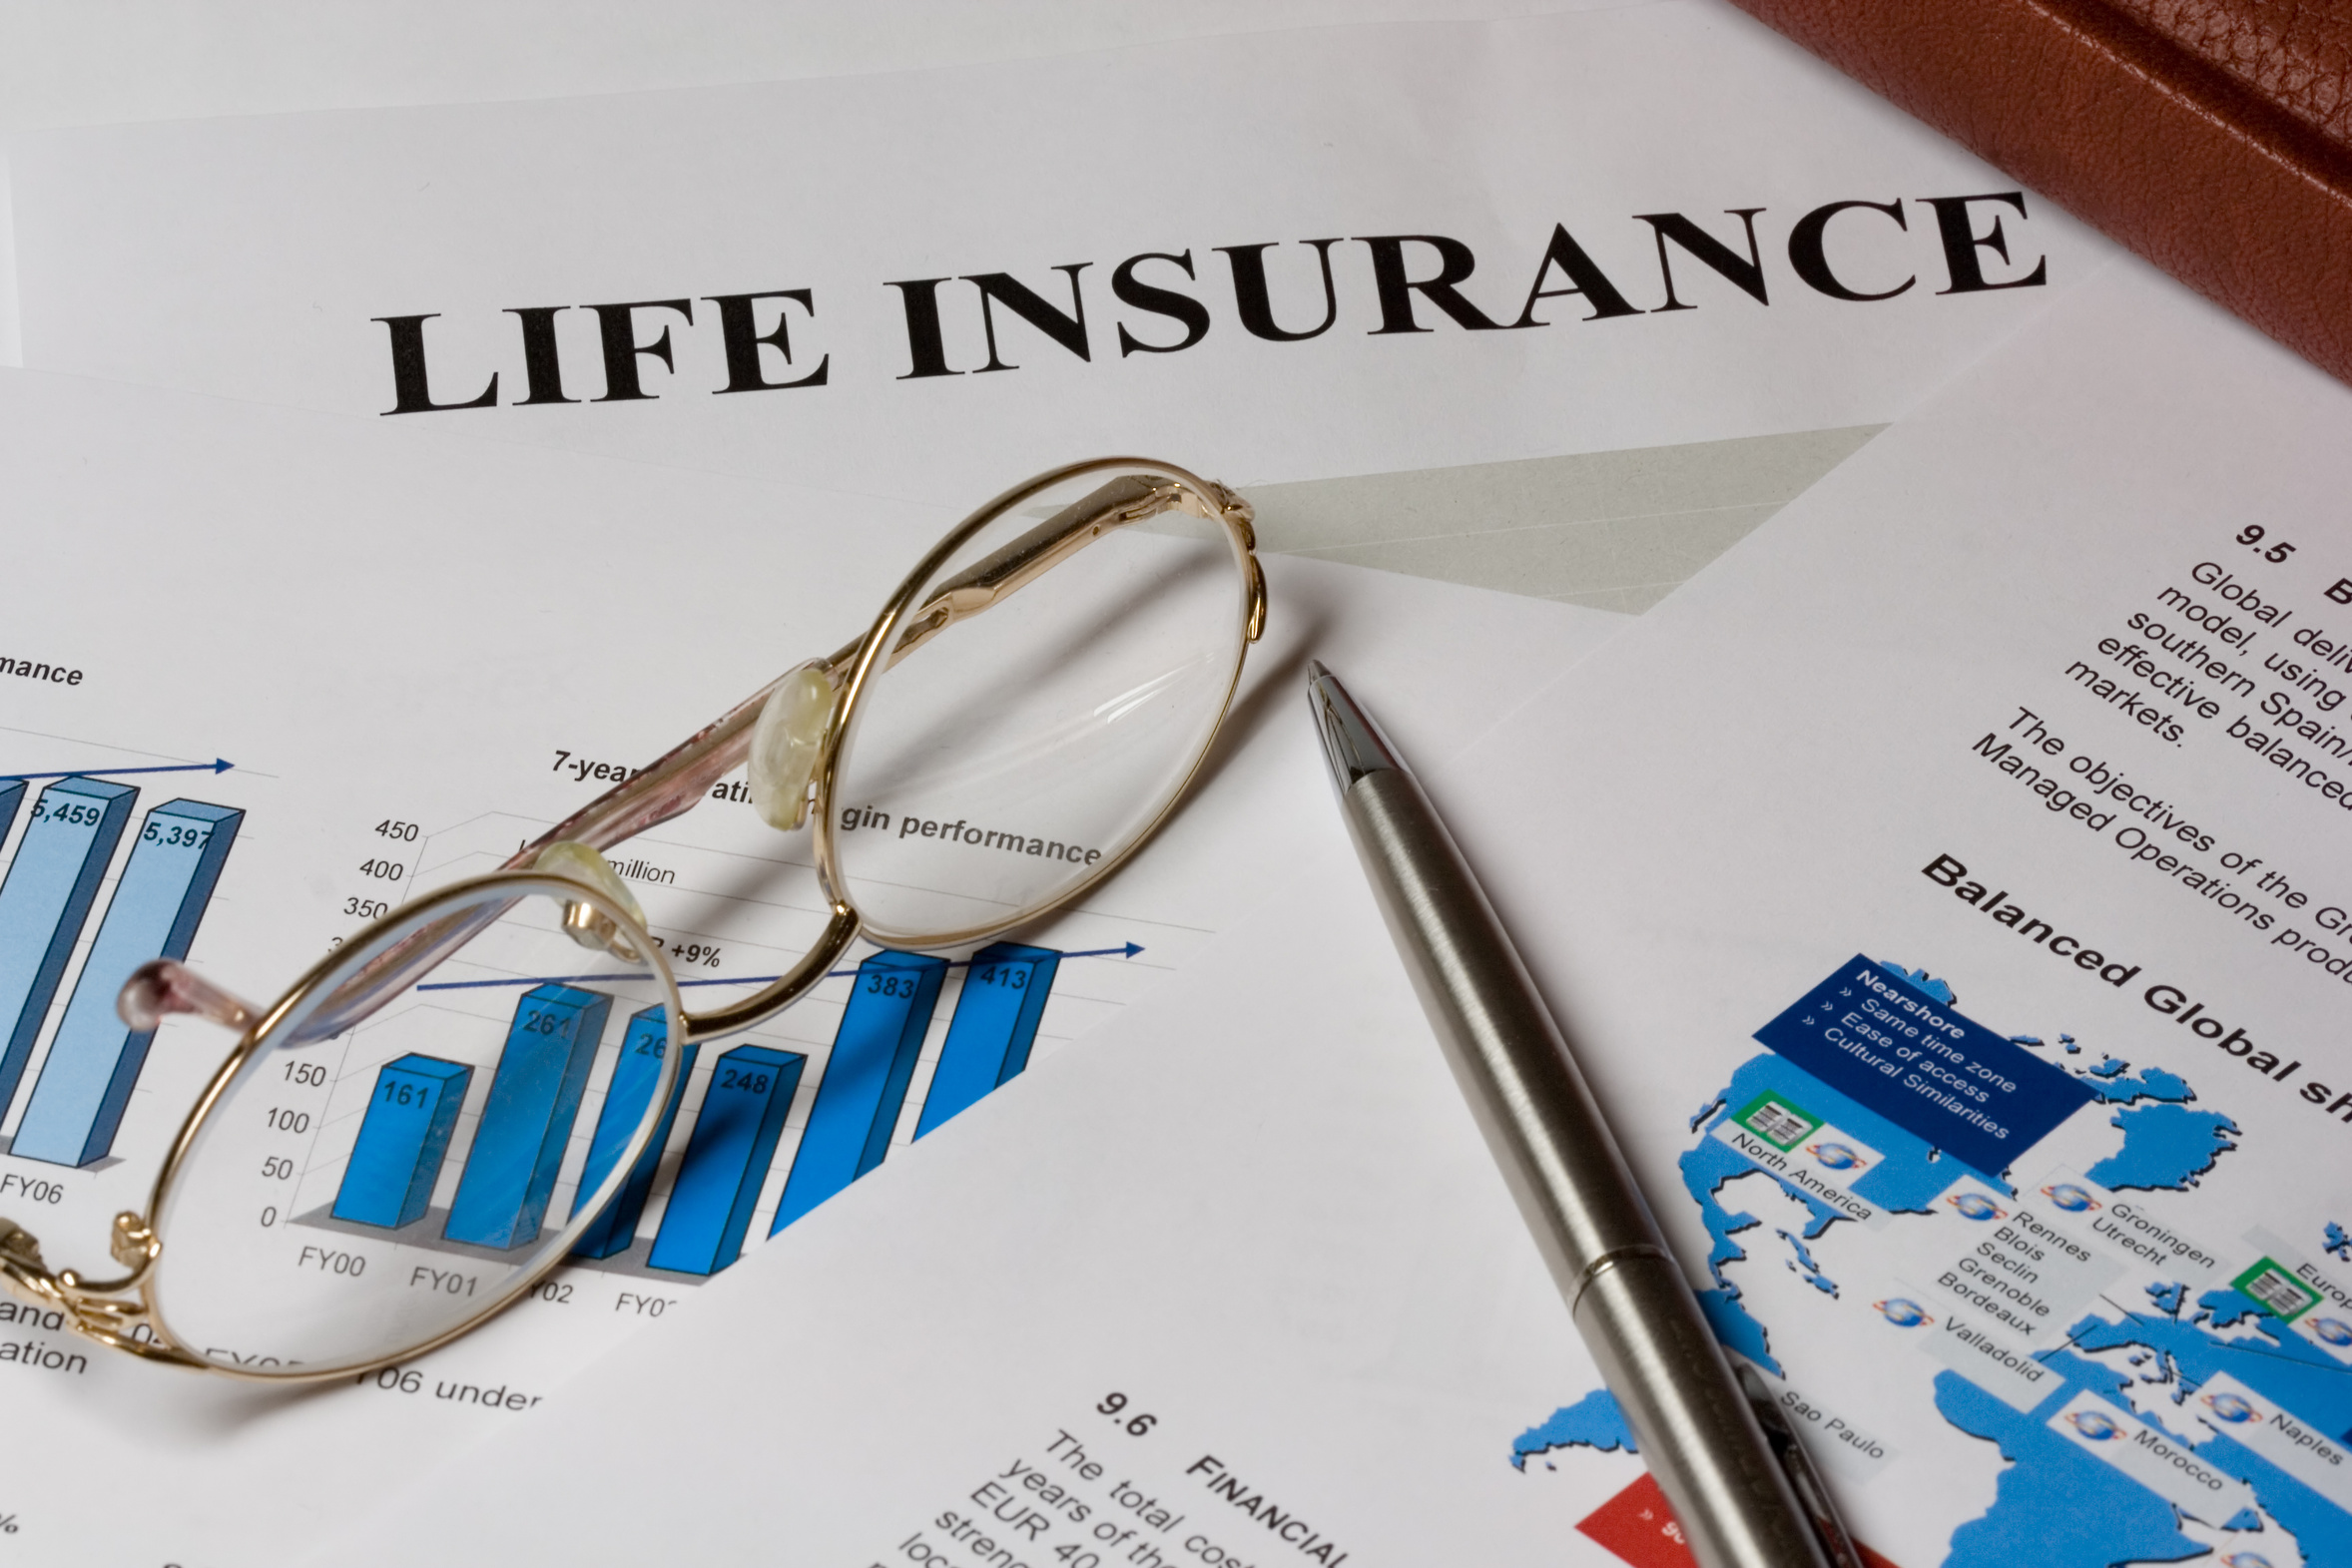 Life Insurance Sales Pitches That Should Make You Suspicious